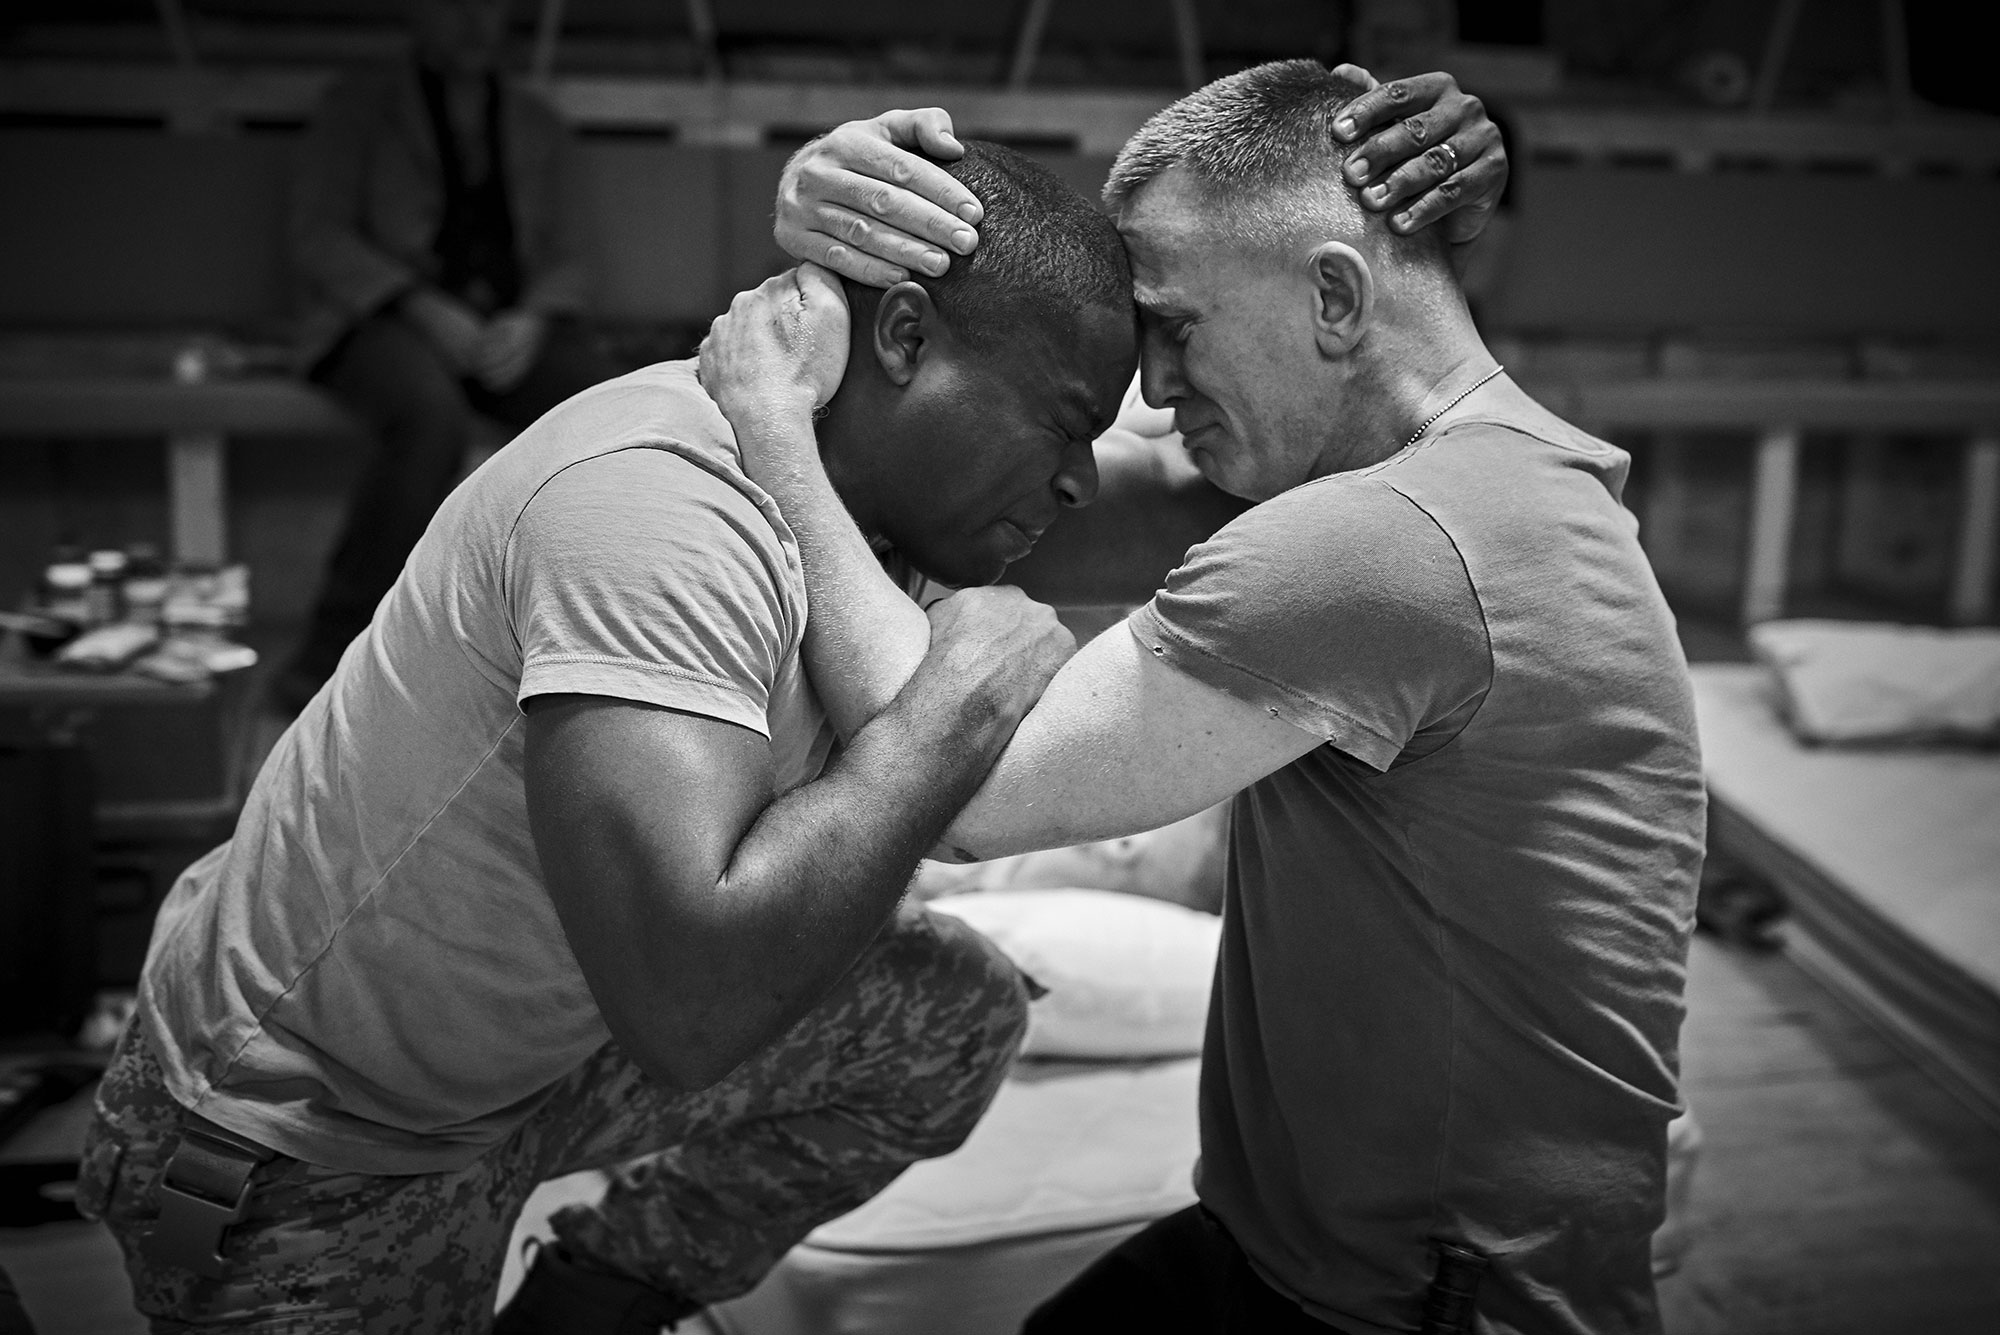 David Oyelowo as Othello and Daniel Craig as Lago